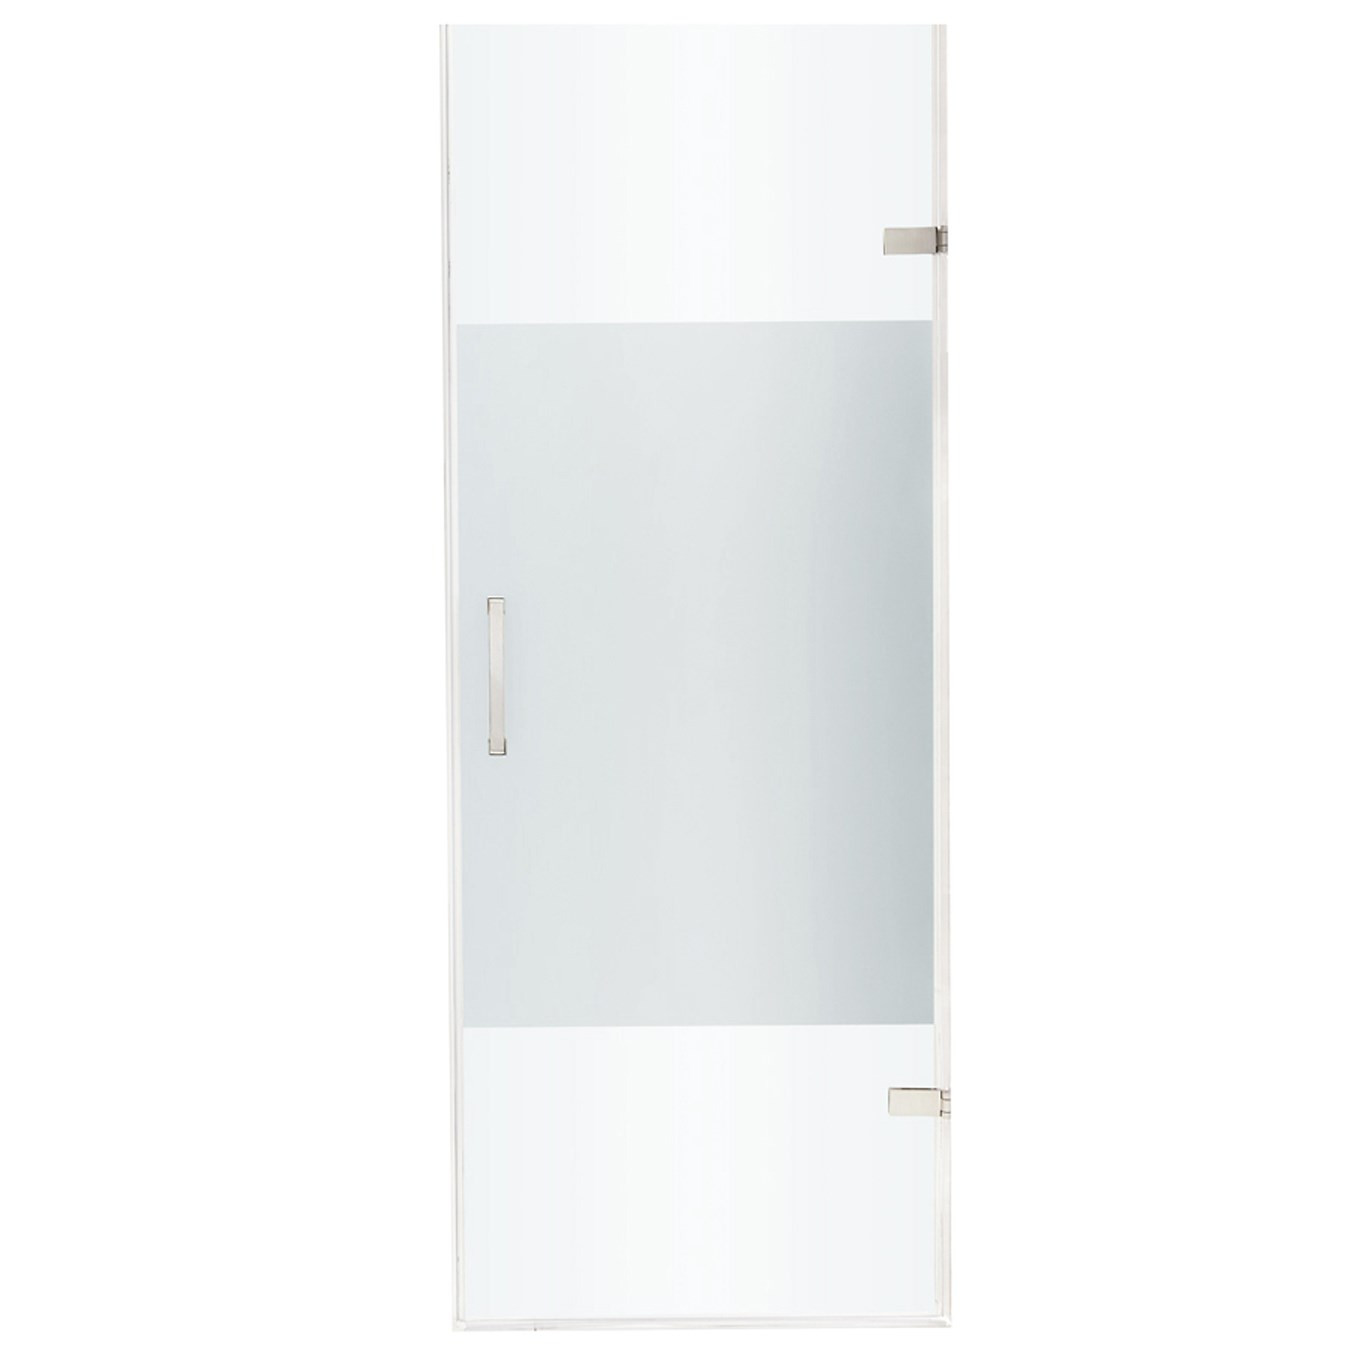 VIGO VG6072STCMC28 SoHo Adjustable Frameless Shower Door In Stainless Steel Hardware